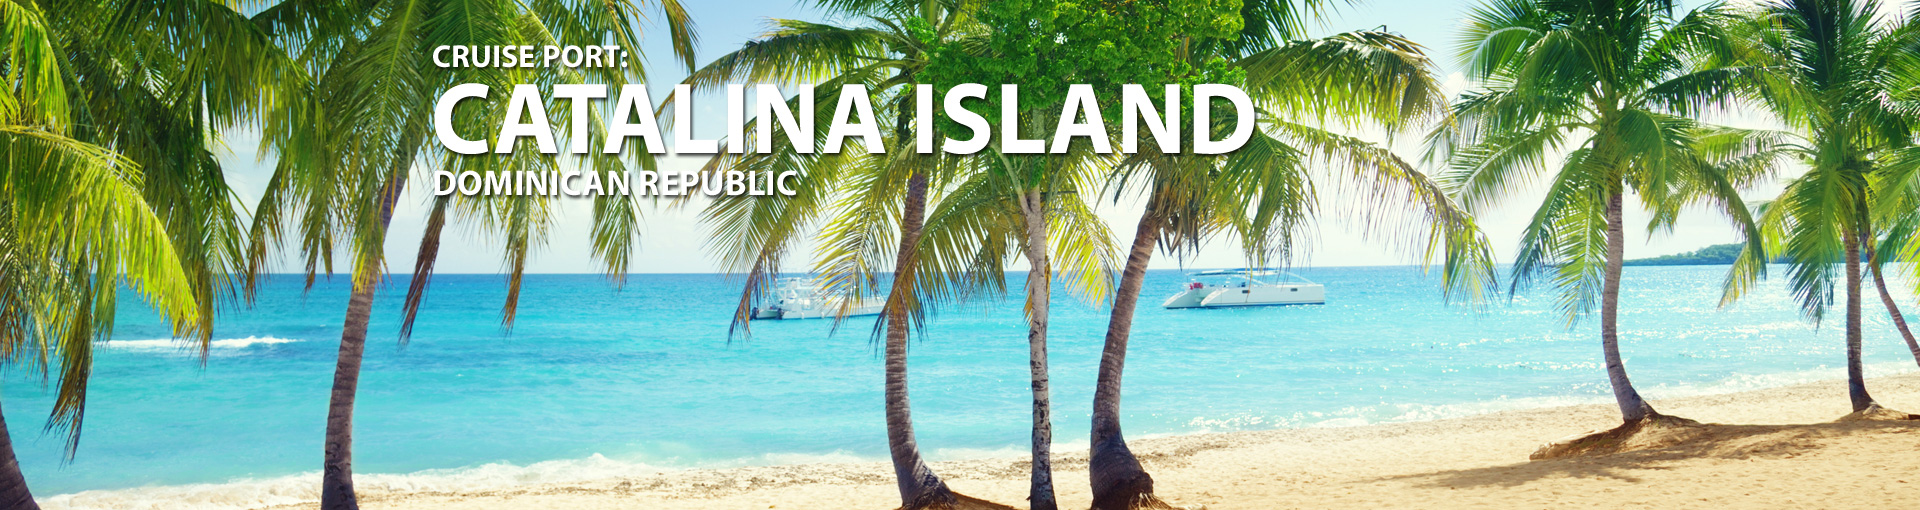 Cruises to Catalina Island, Dominican Republic